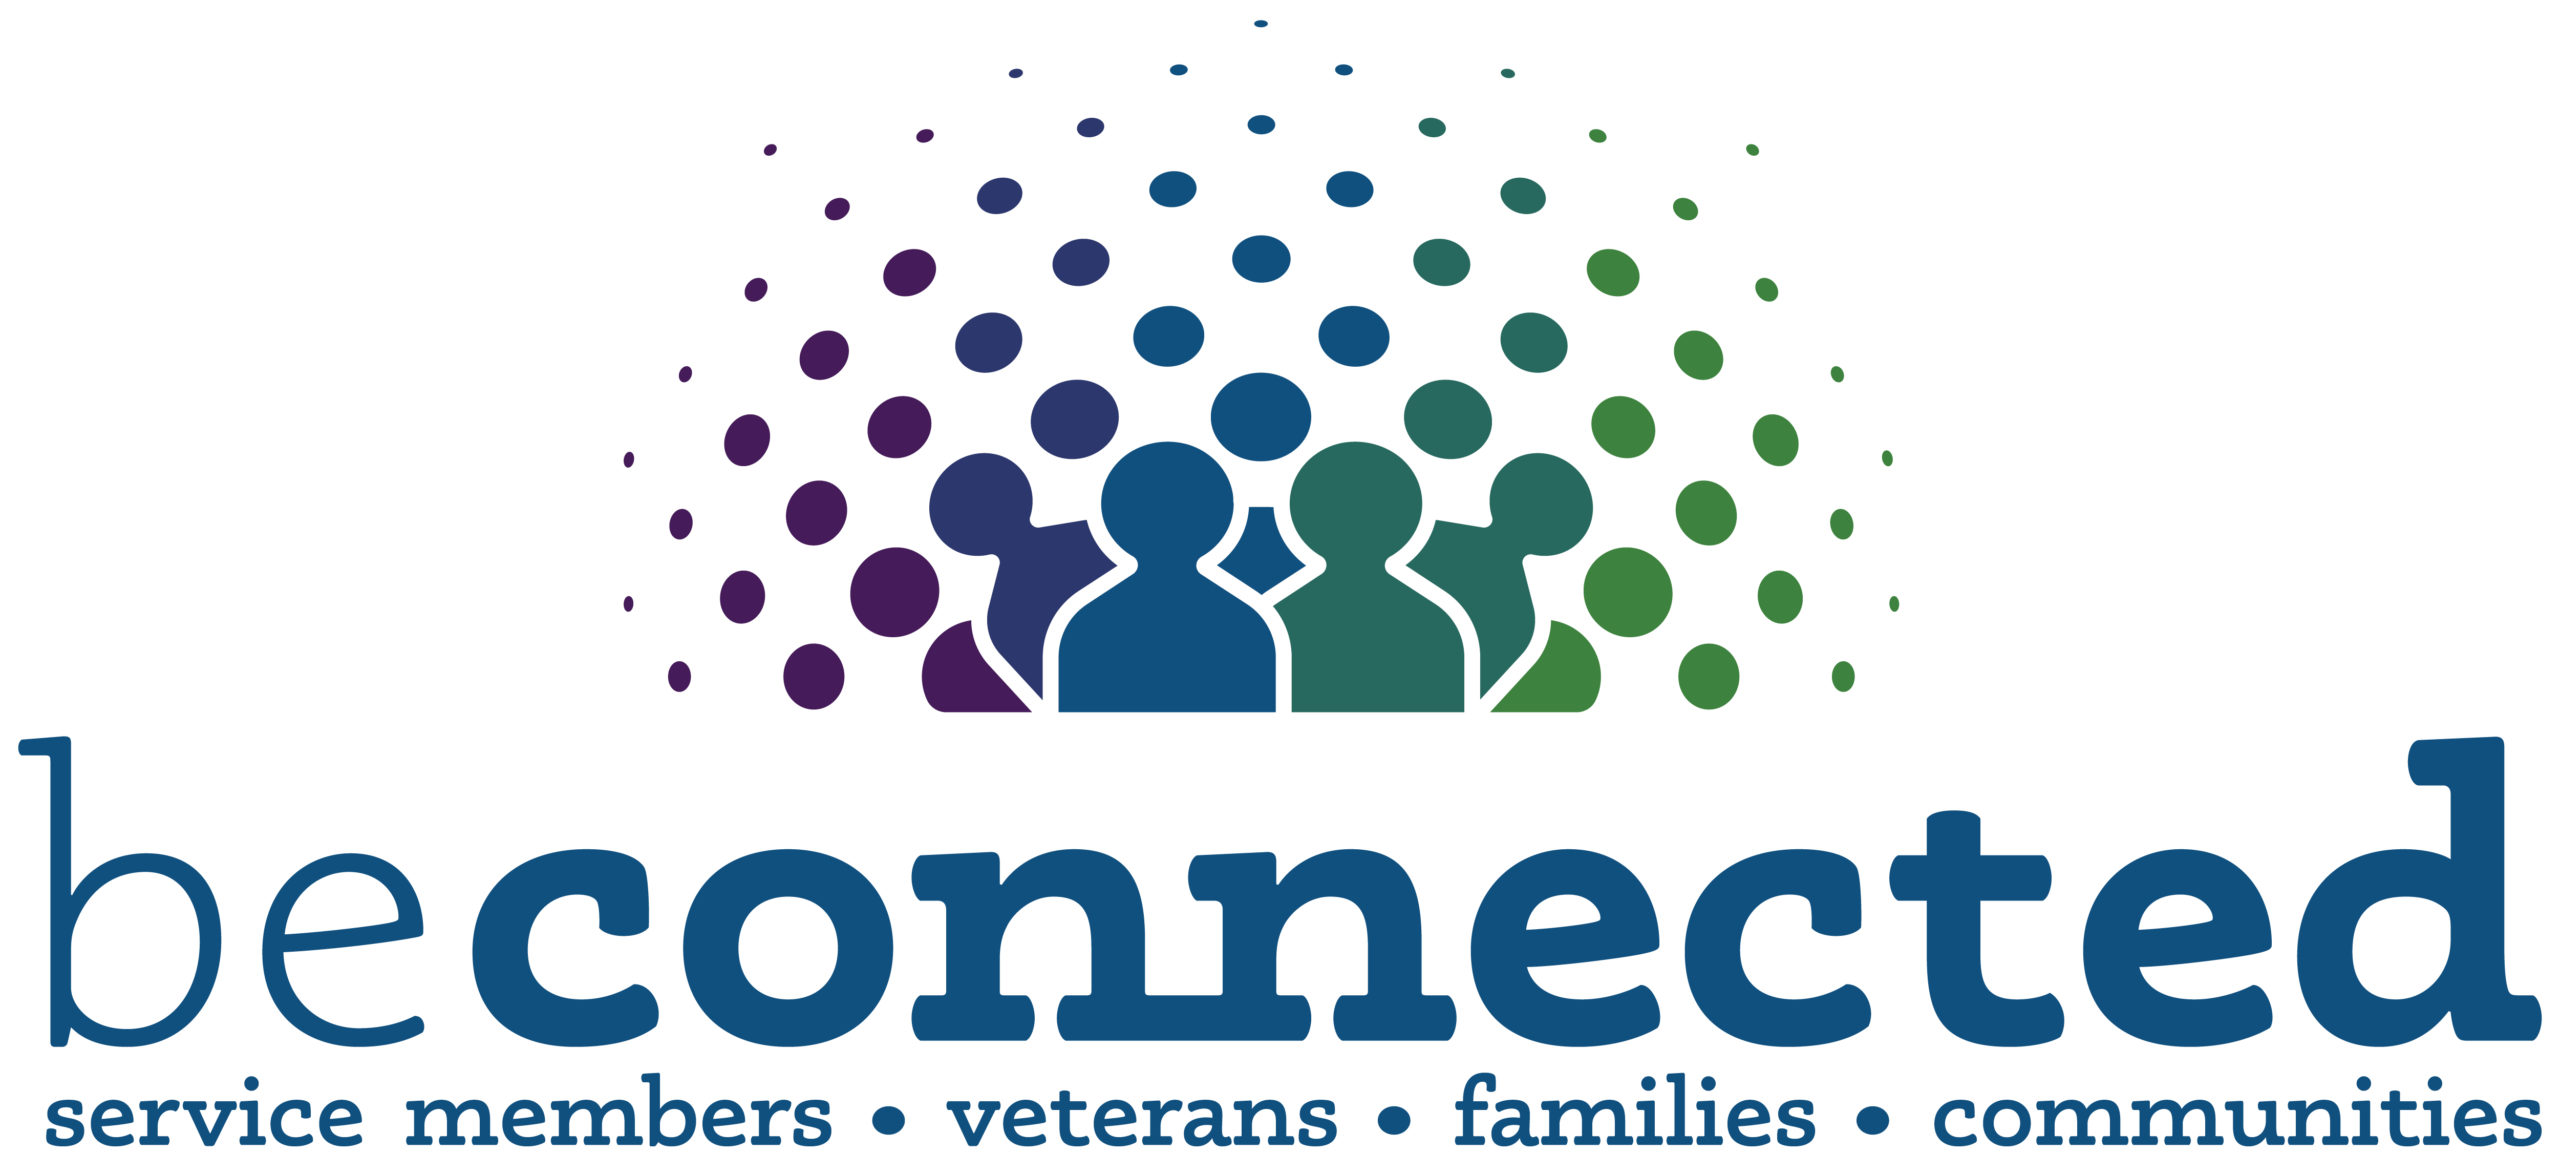 2020 BeConnected_logo